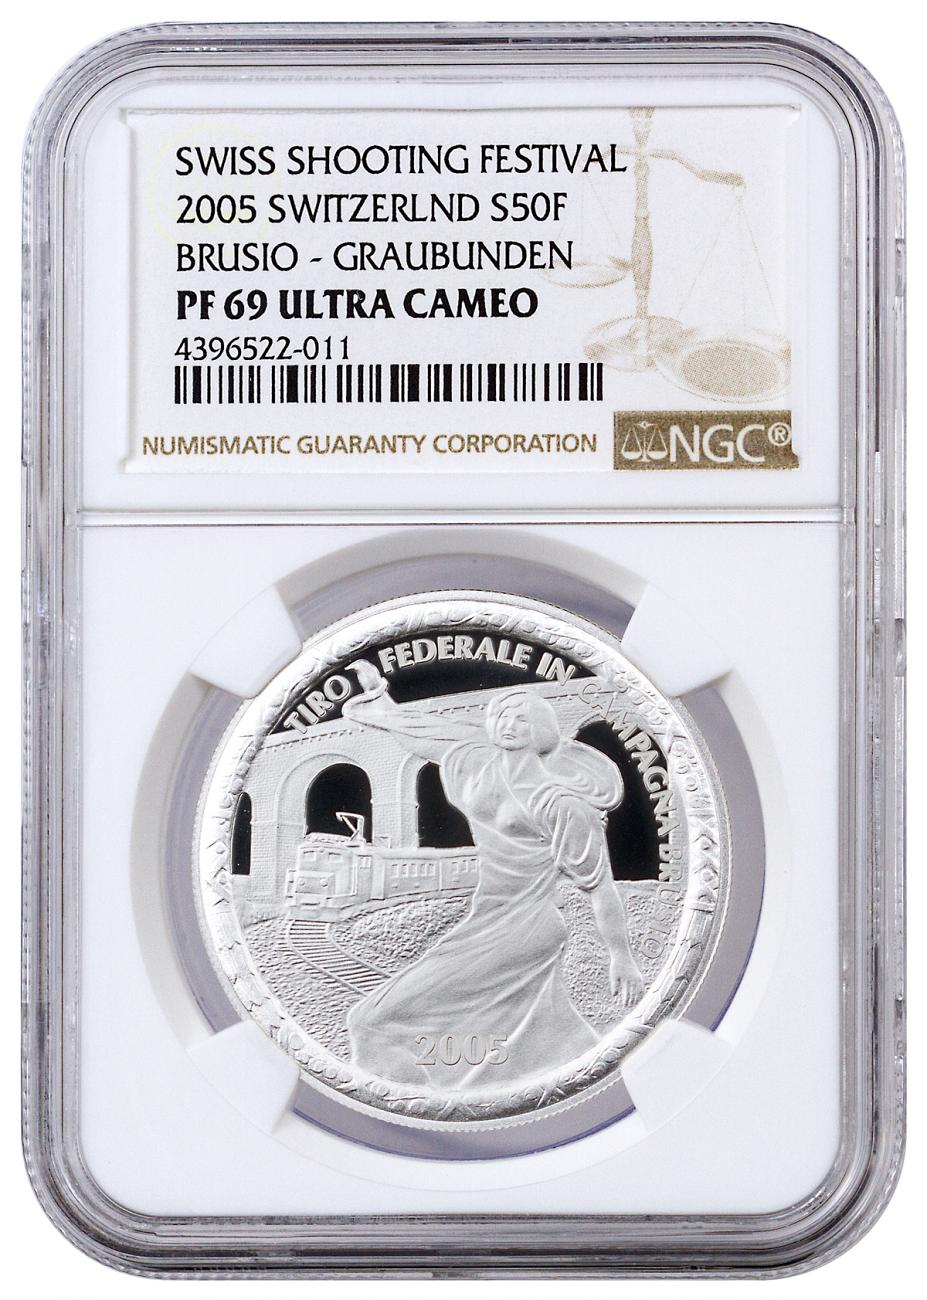 2005 Switzerland 50 Francs Proof Silver Shooting Festival Thaler - Brusio-Graubunden - NGC PF69 UC